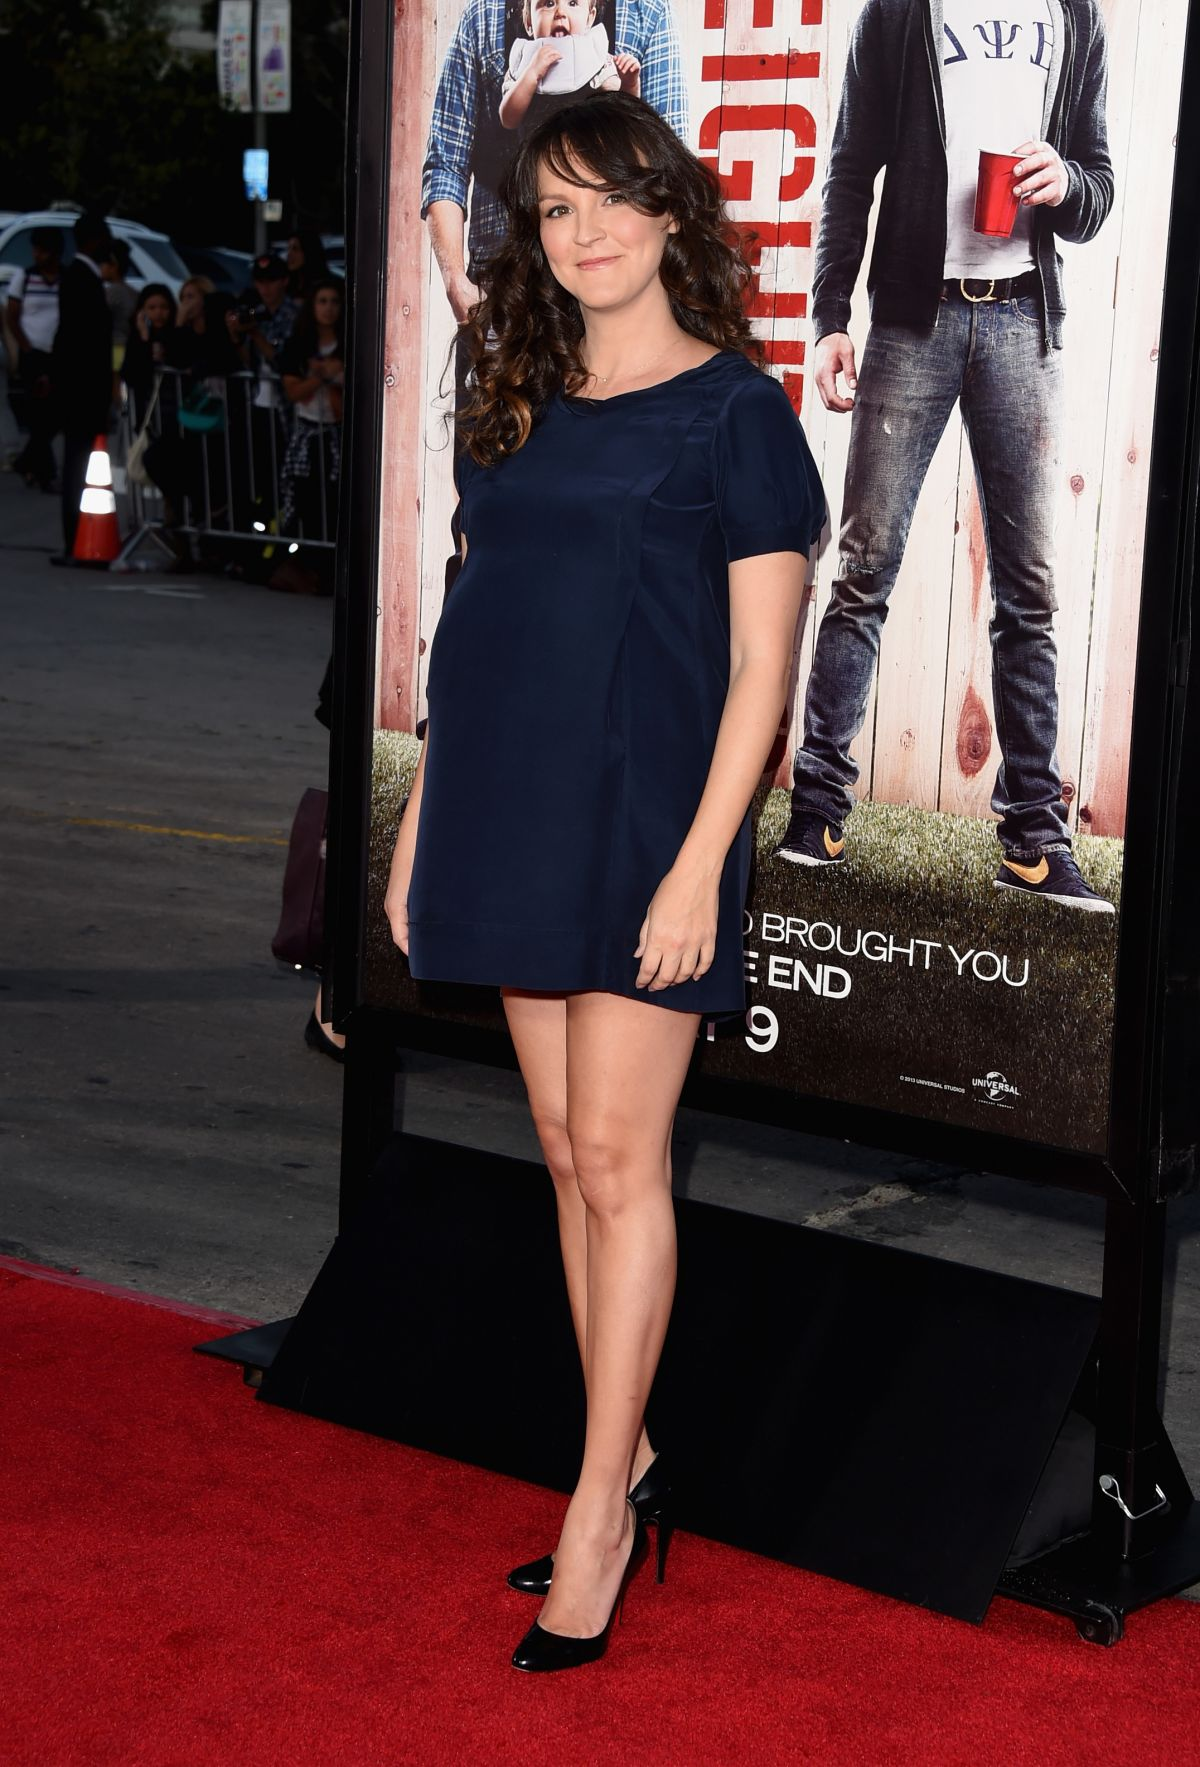 CARLA GALLO at Neighbors Premiere in Westwood